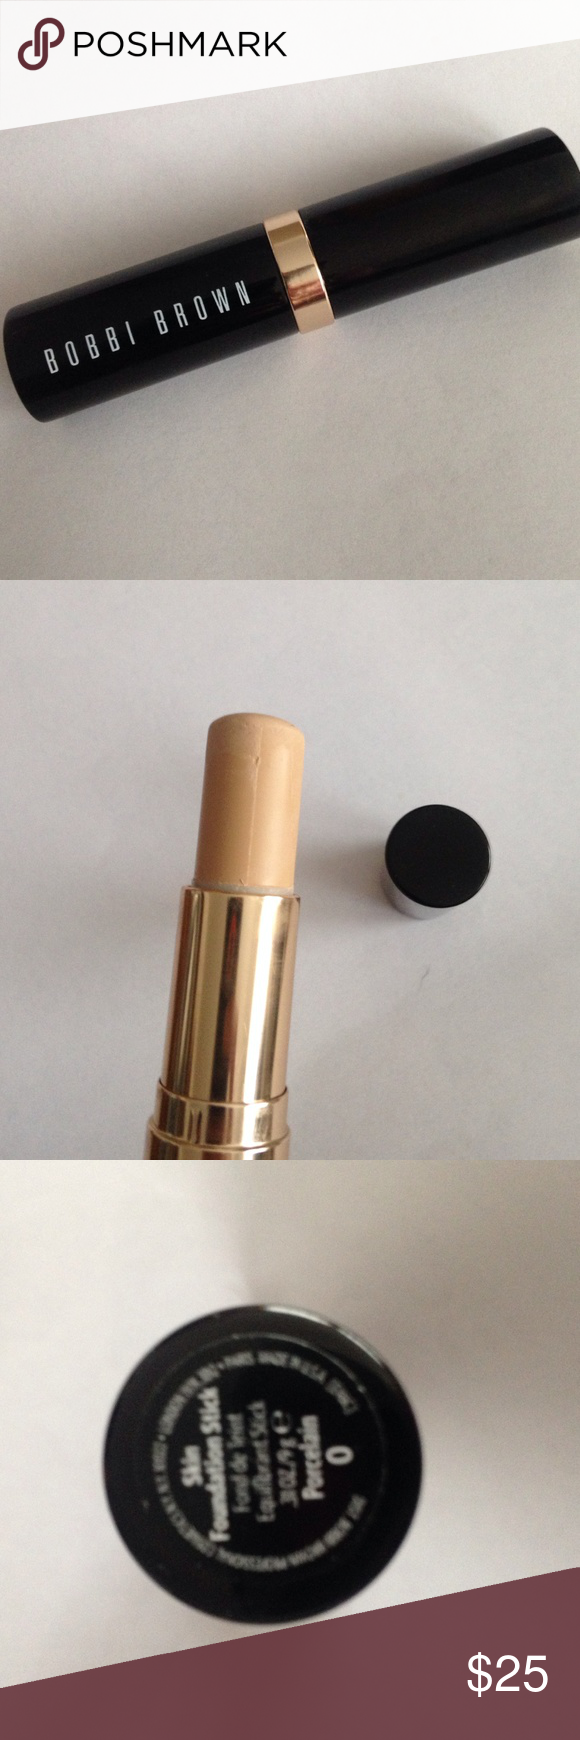 Bobbi Brown foundation stick Used four times, lots of product left as shown in pic. Color is porcelain Bobbi Brown Makeup Foundation